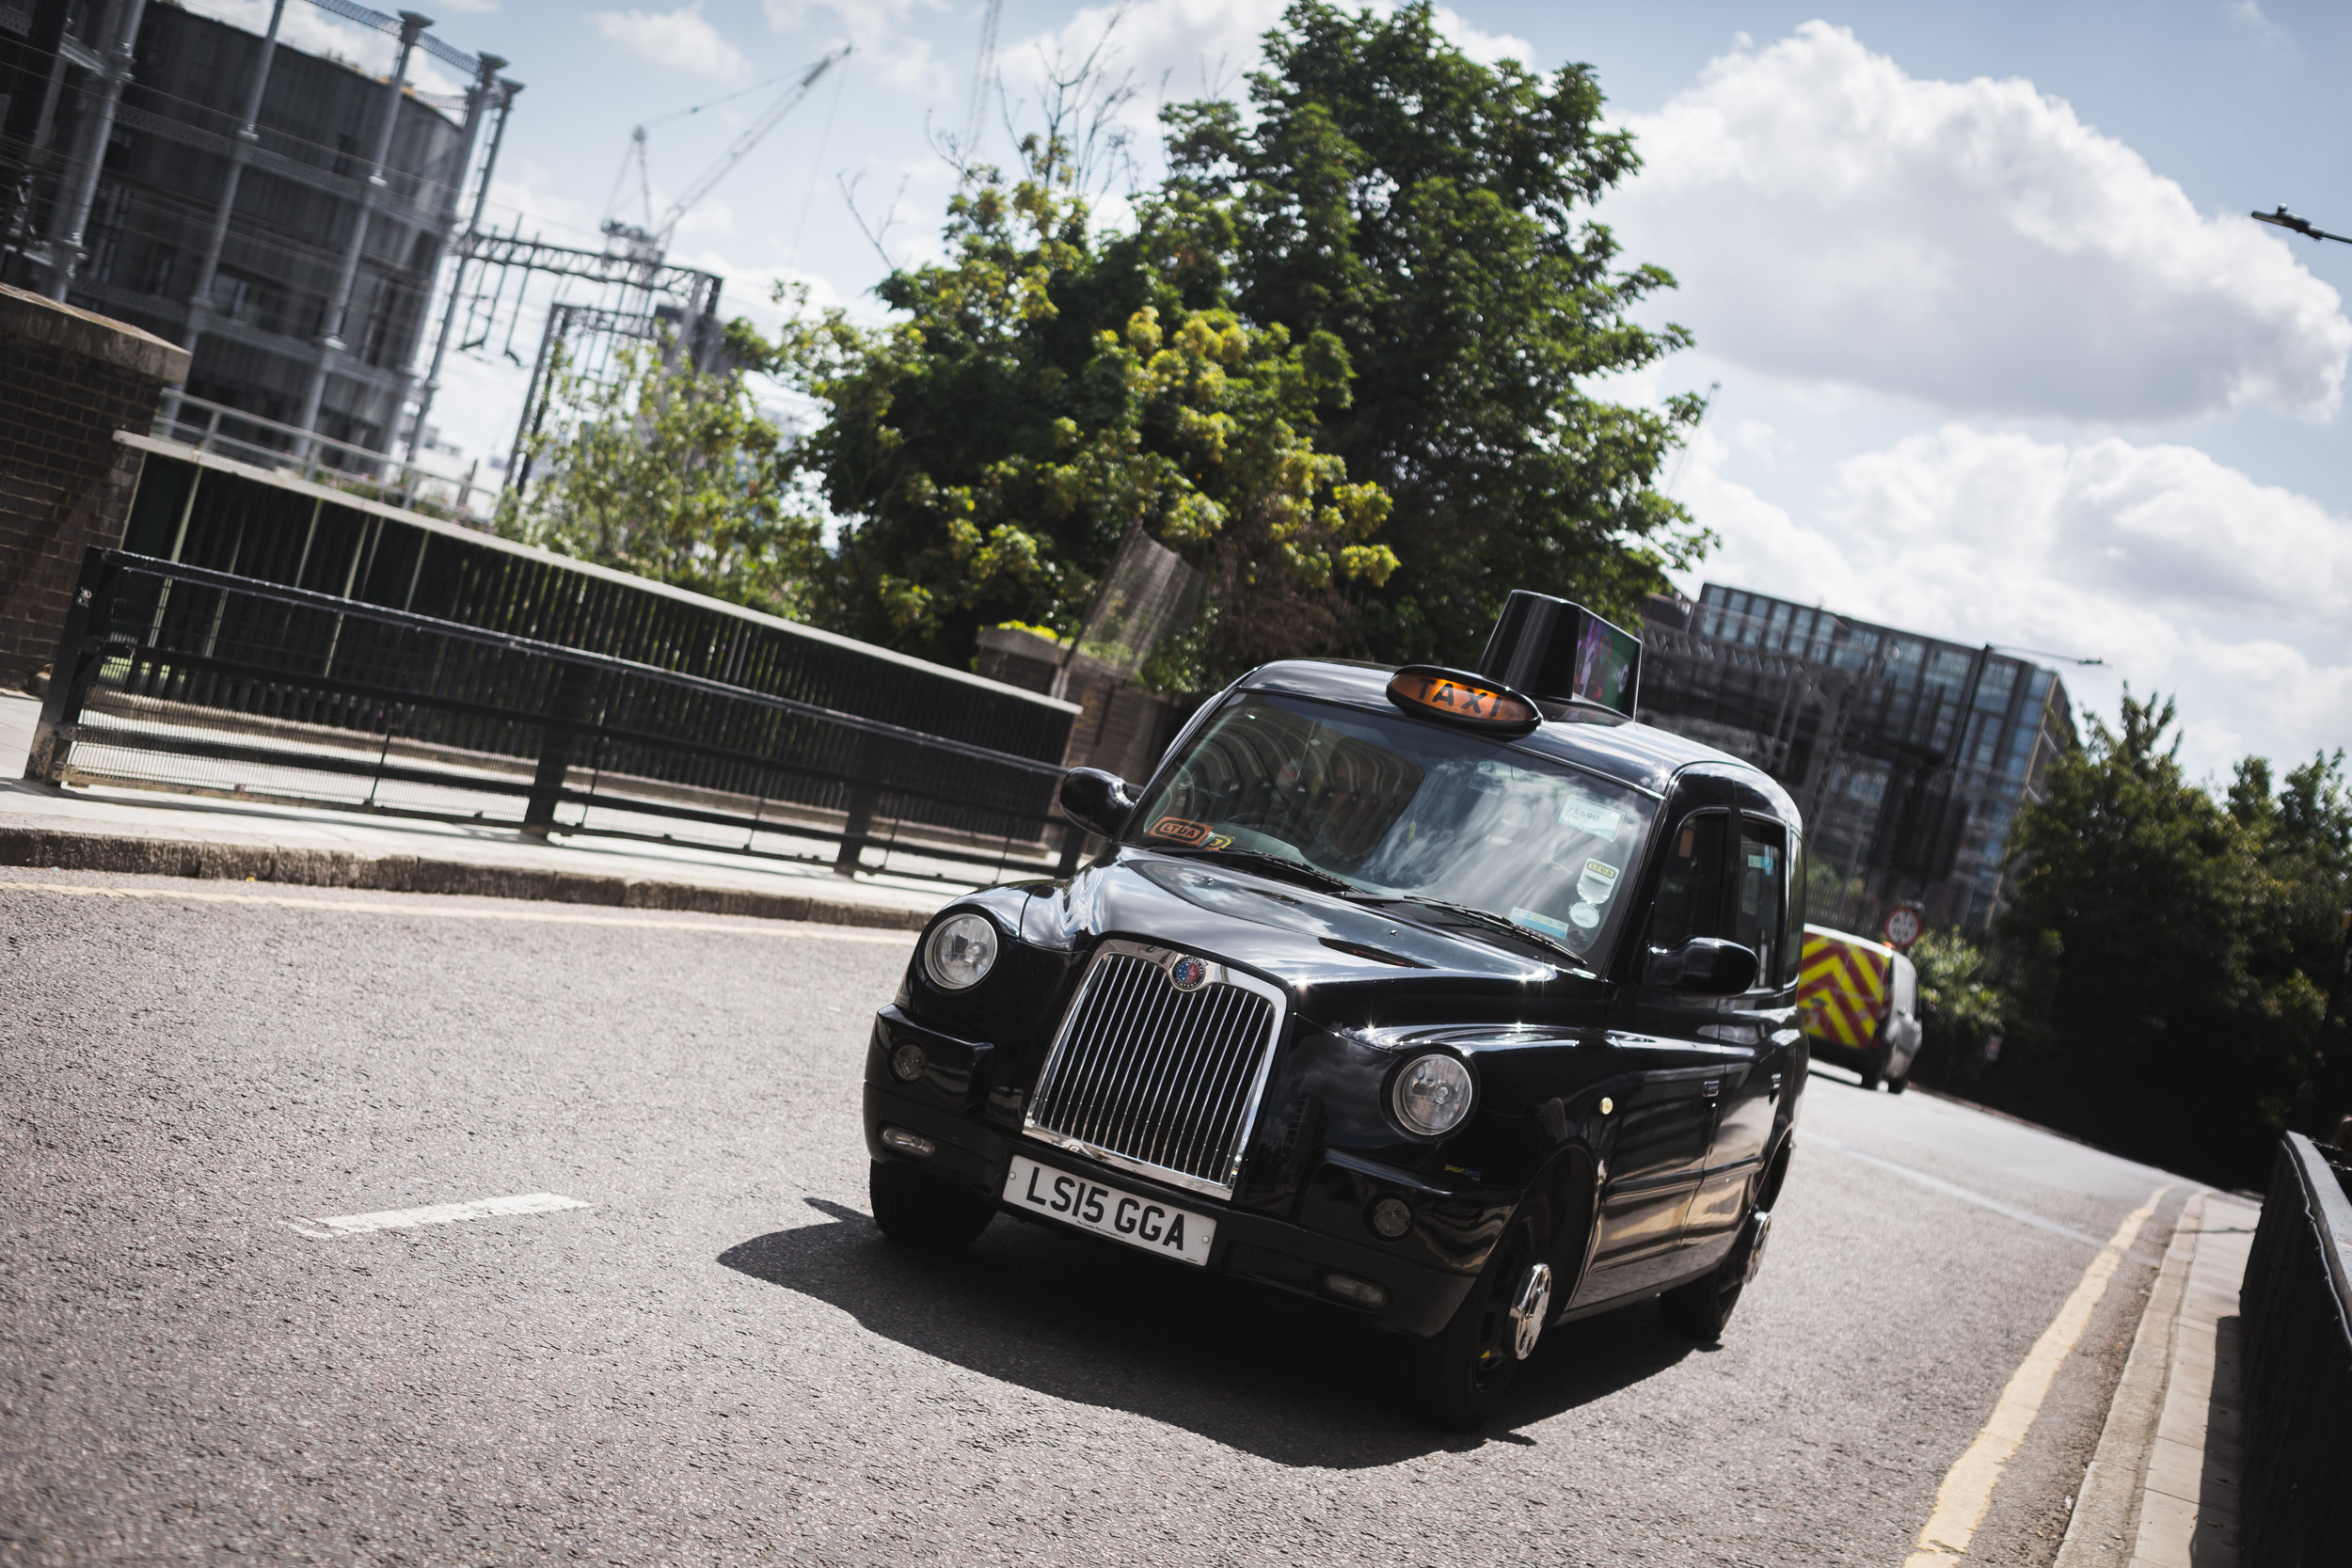 London's iconic cabs are an ubiquitous sight around the city.